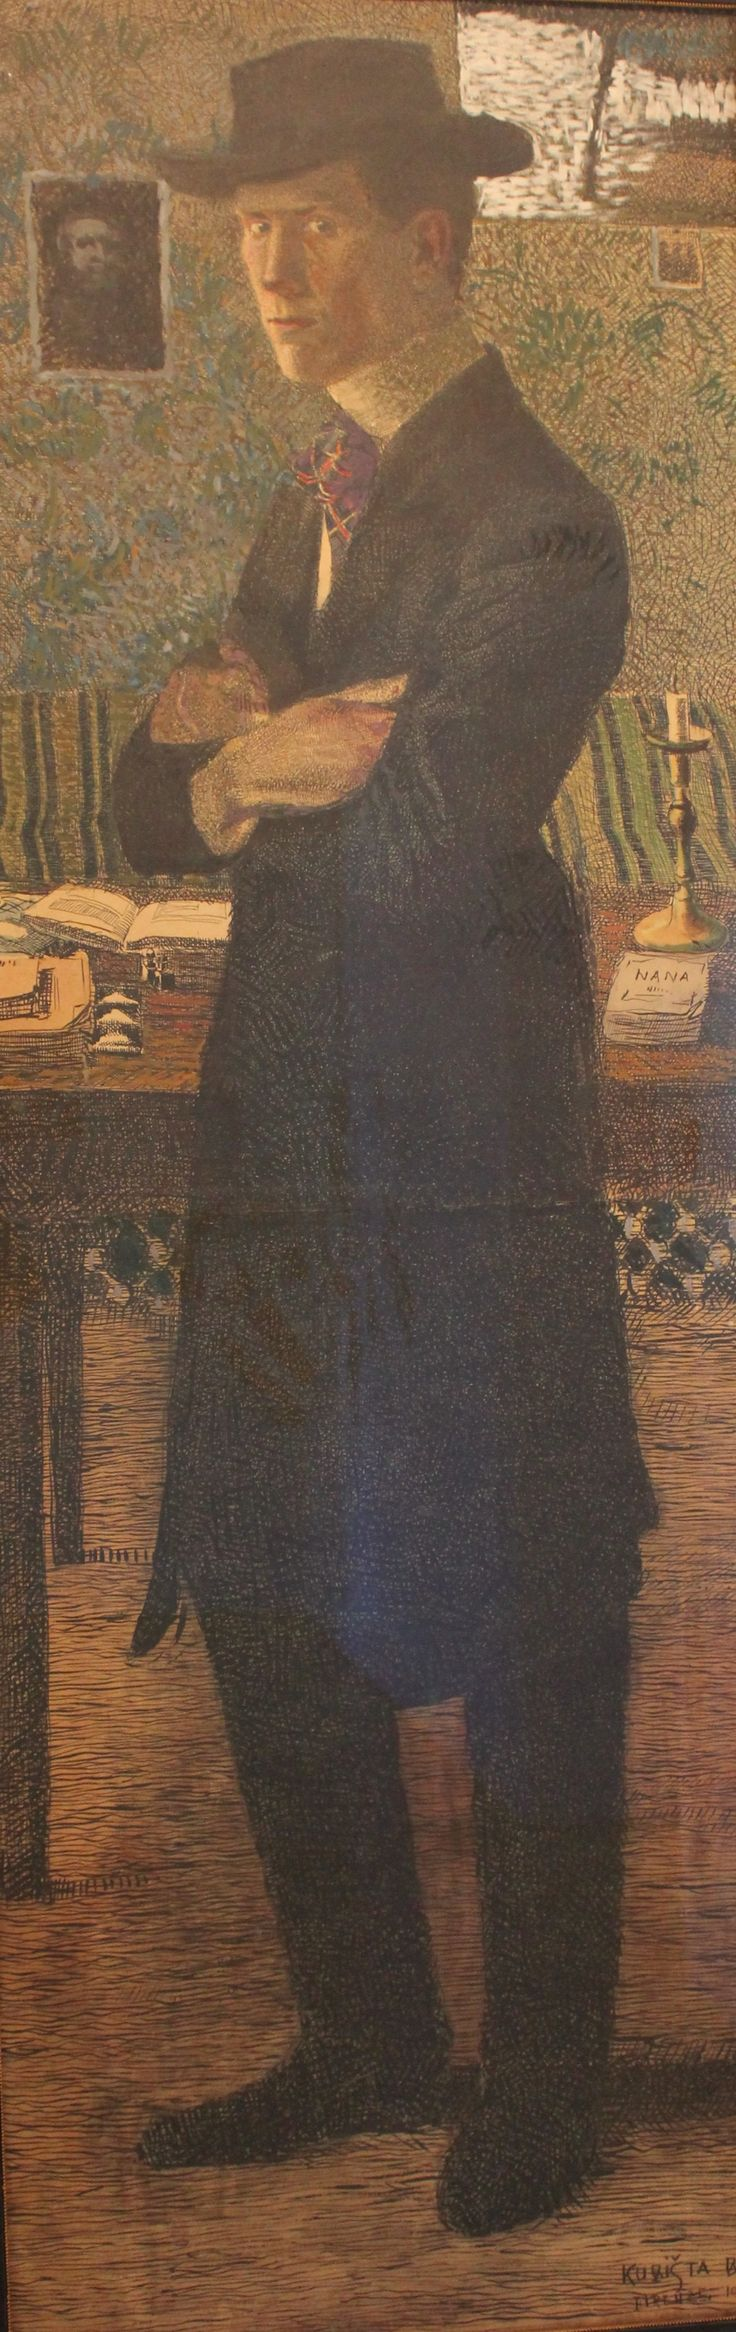 Self-portrait, Bohumil Kubišta, 1906.